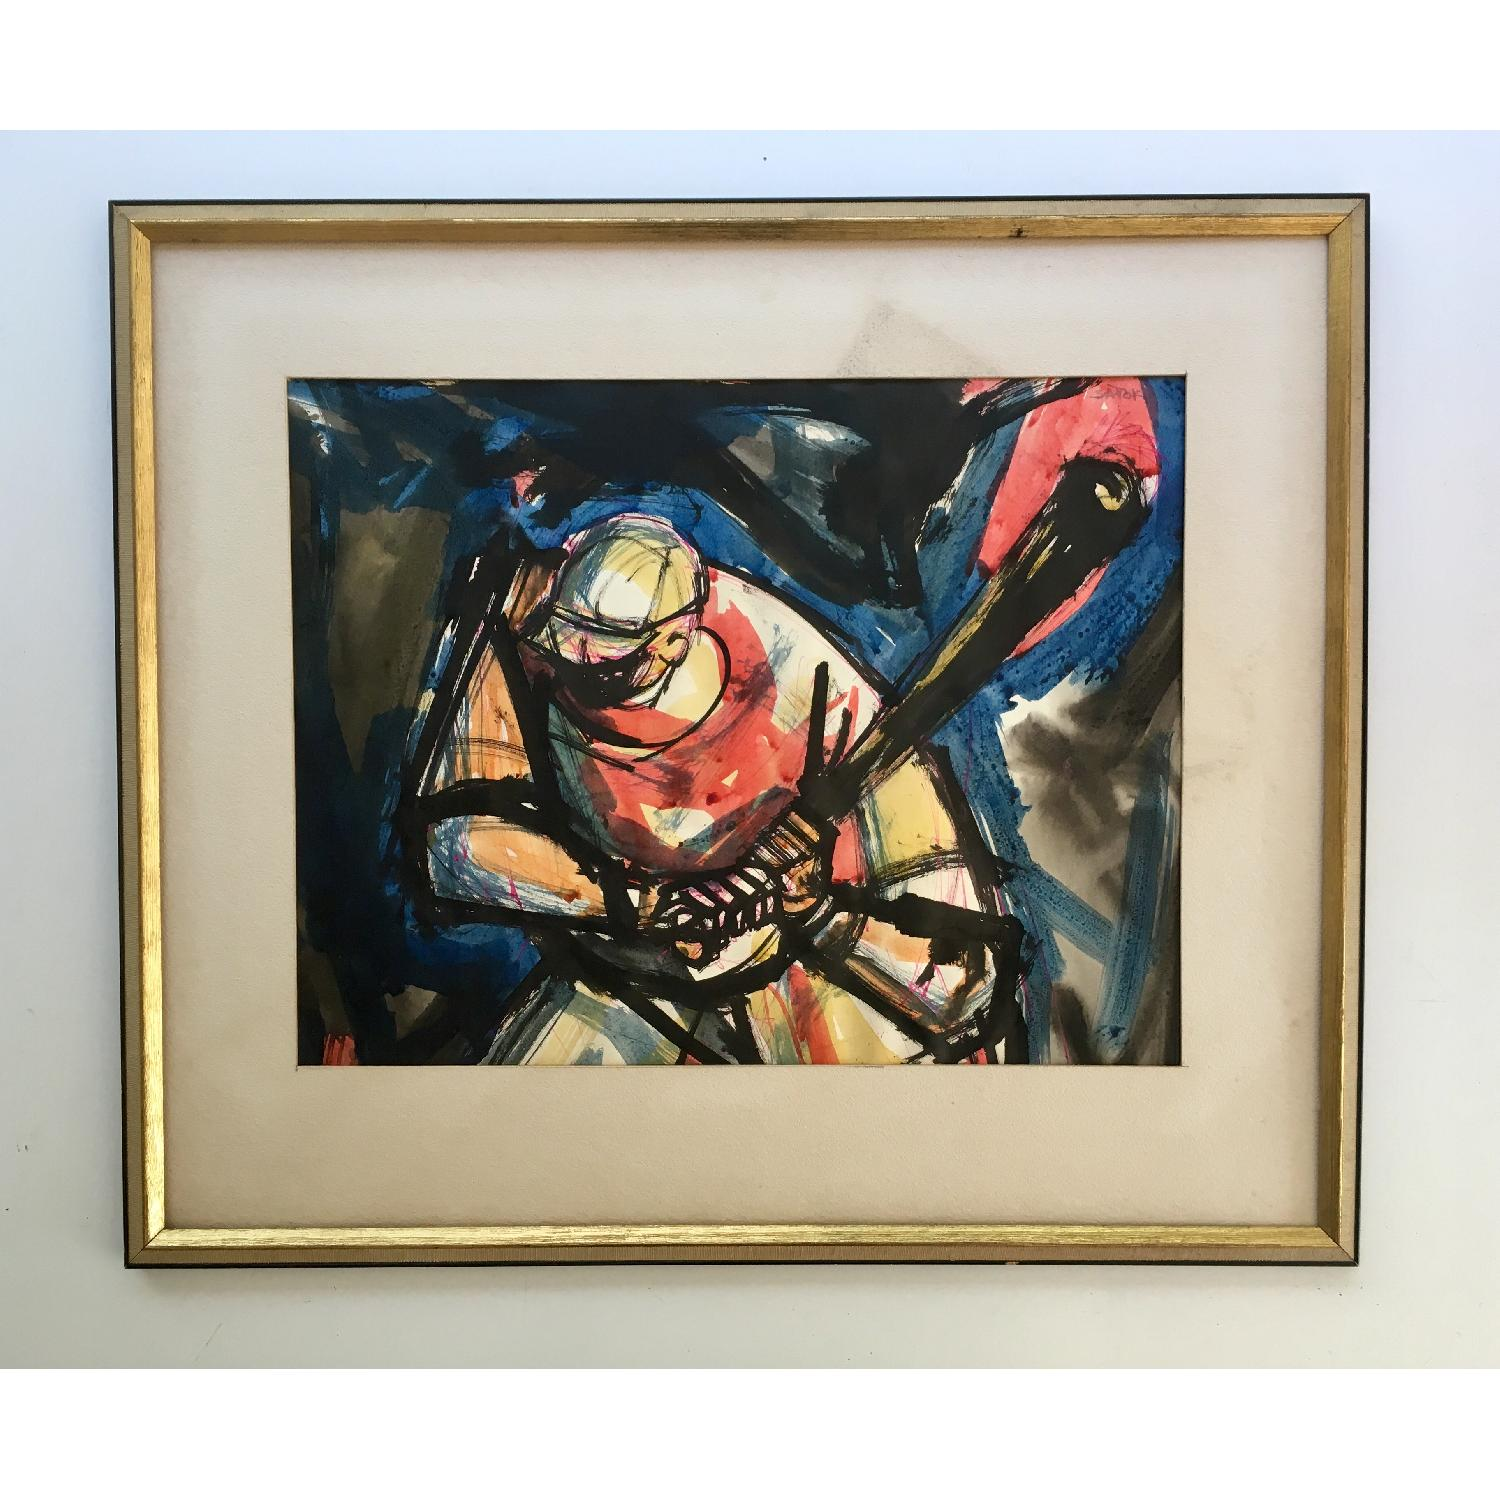 Ronald Satok Vintage Modernist Watercolor - image-1